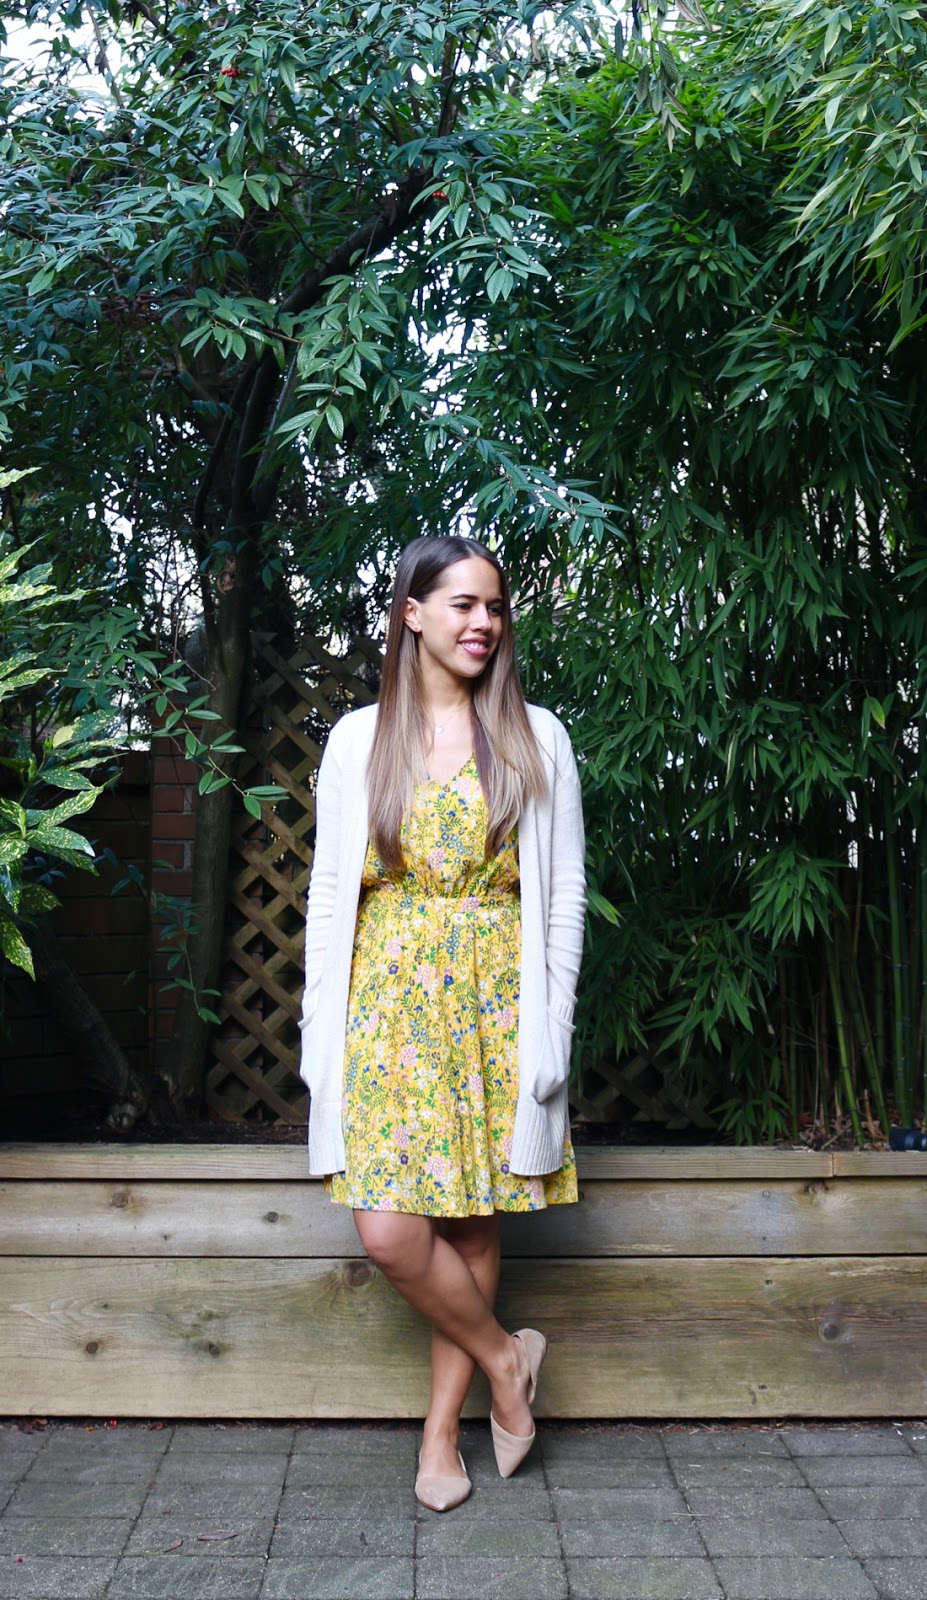 Jules in Flats - Yellow Dress for Spring (Business Casual Spring Workwear on a Budget)